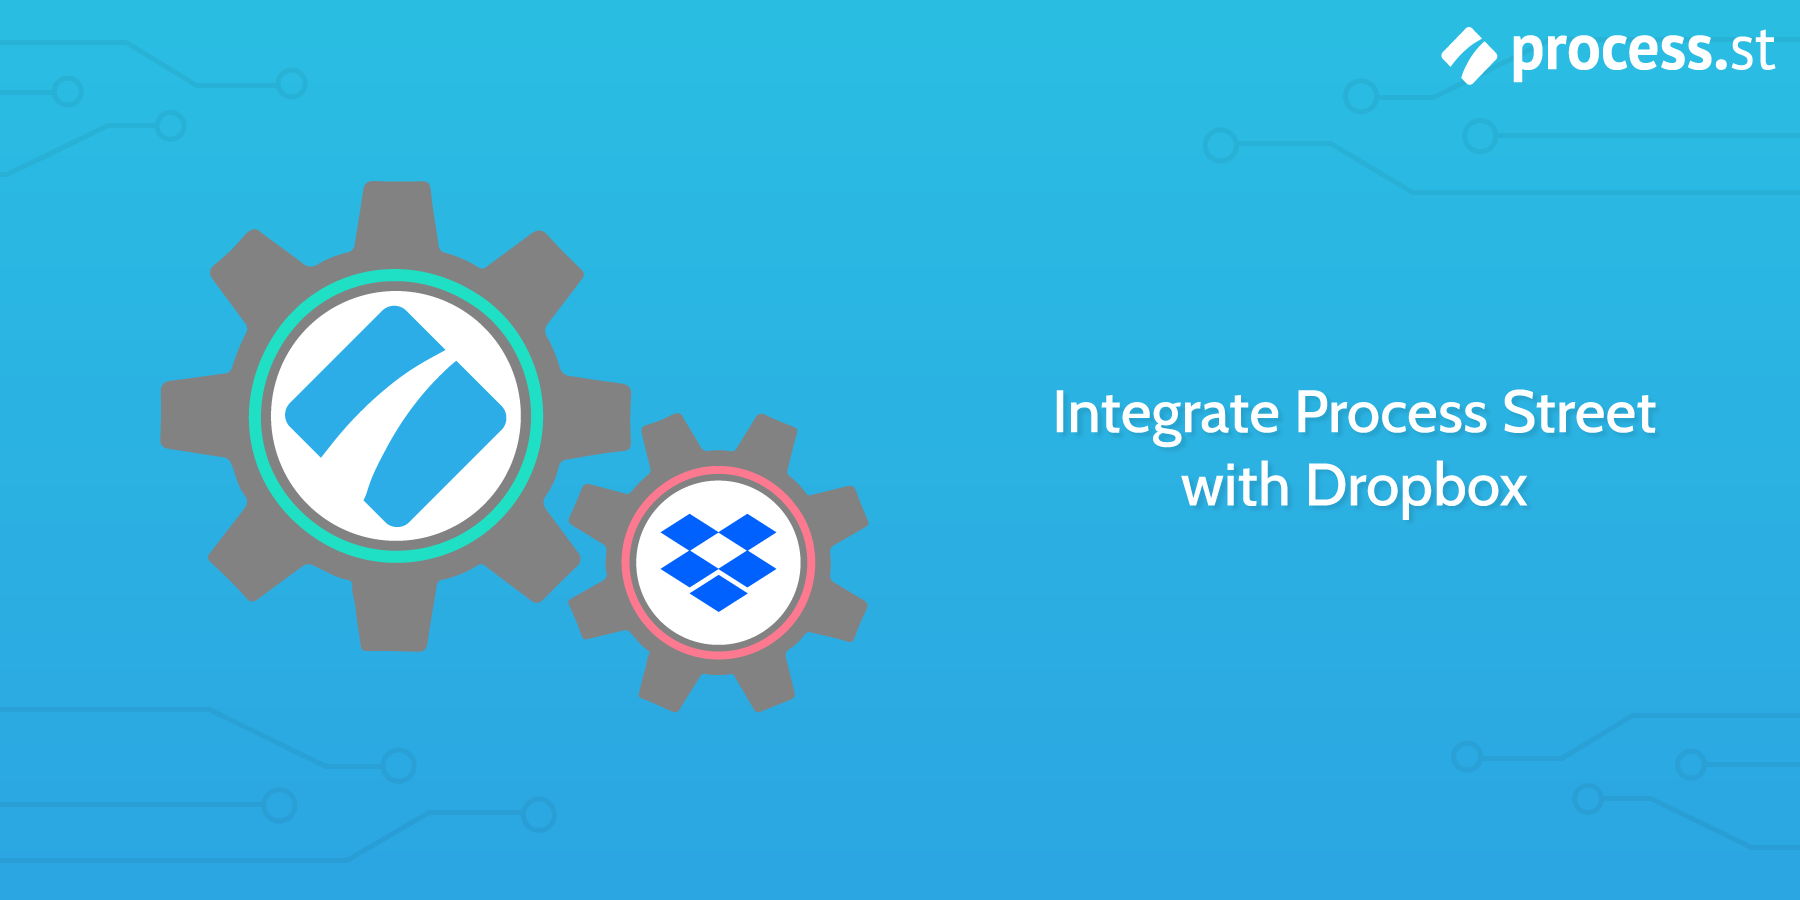 integrate-process-street-with-dropbox